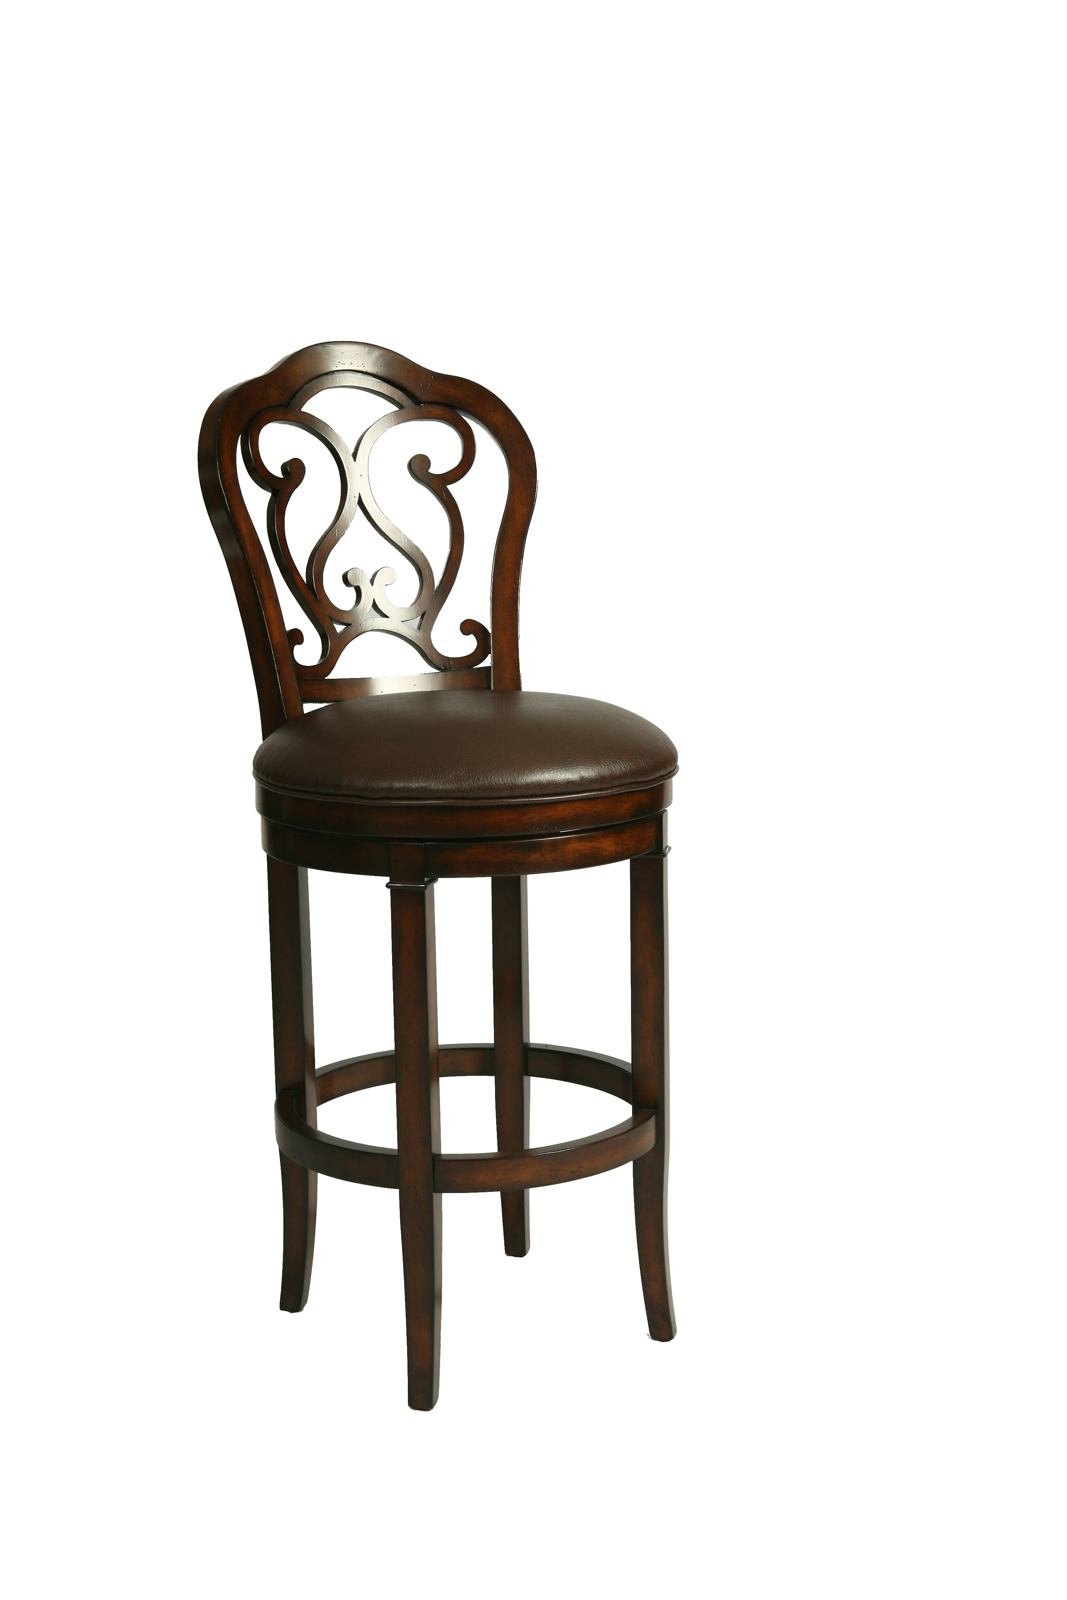 Pastel Furniture Fontana Barstool in Distressed Cherry (Set of 2) FT-225-26-DC-985